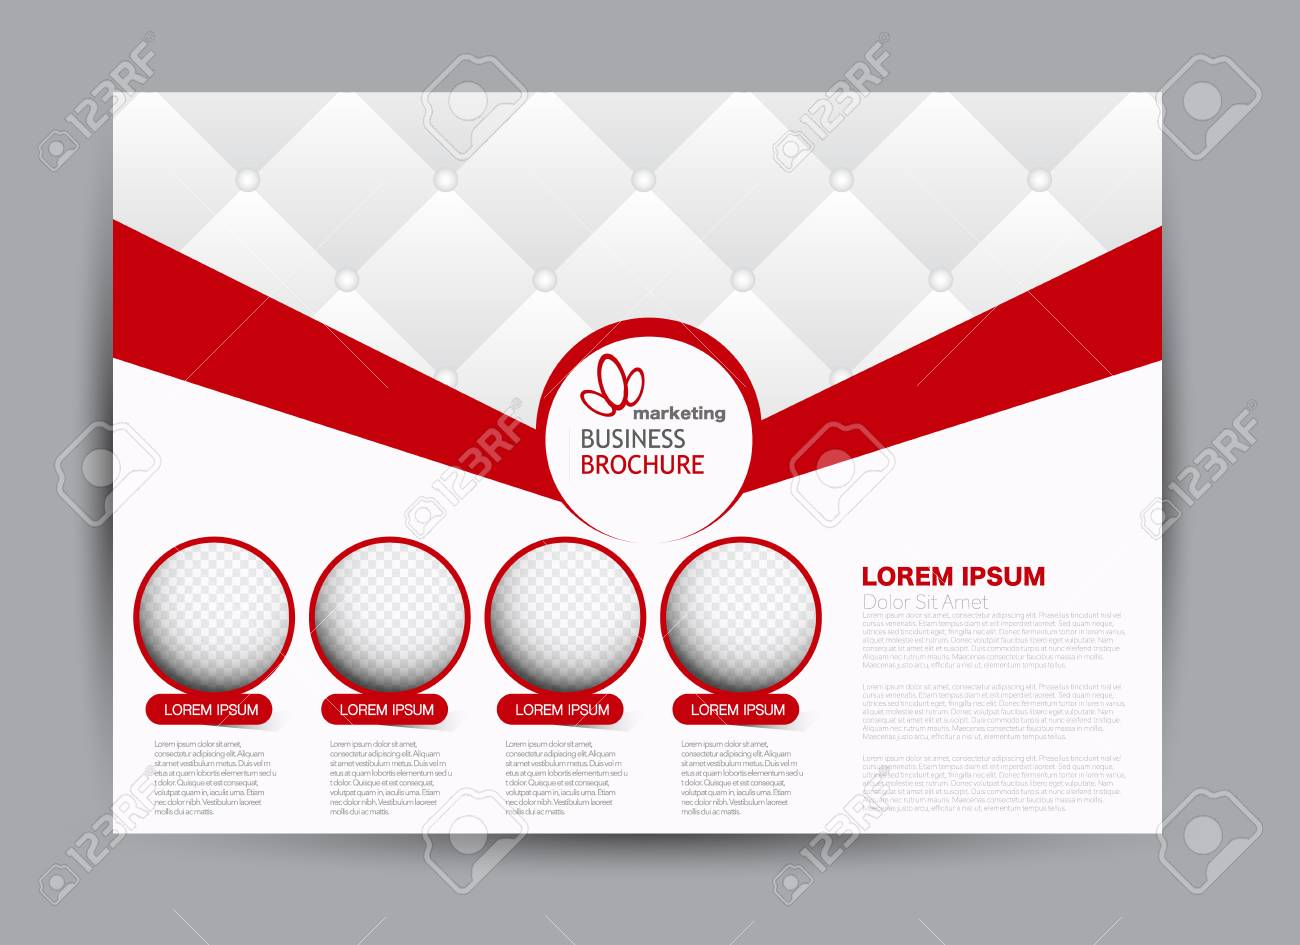 Download 8200 Background Desain Alam HD Terbaru